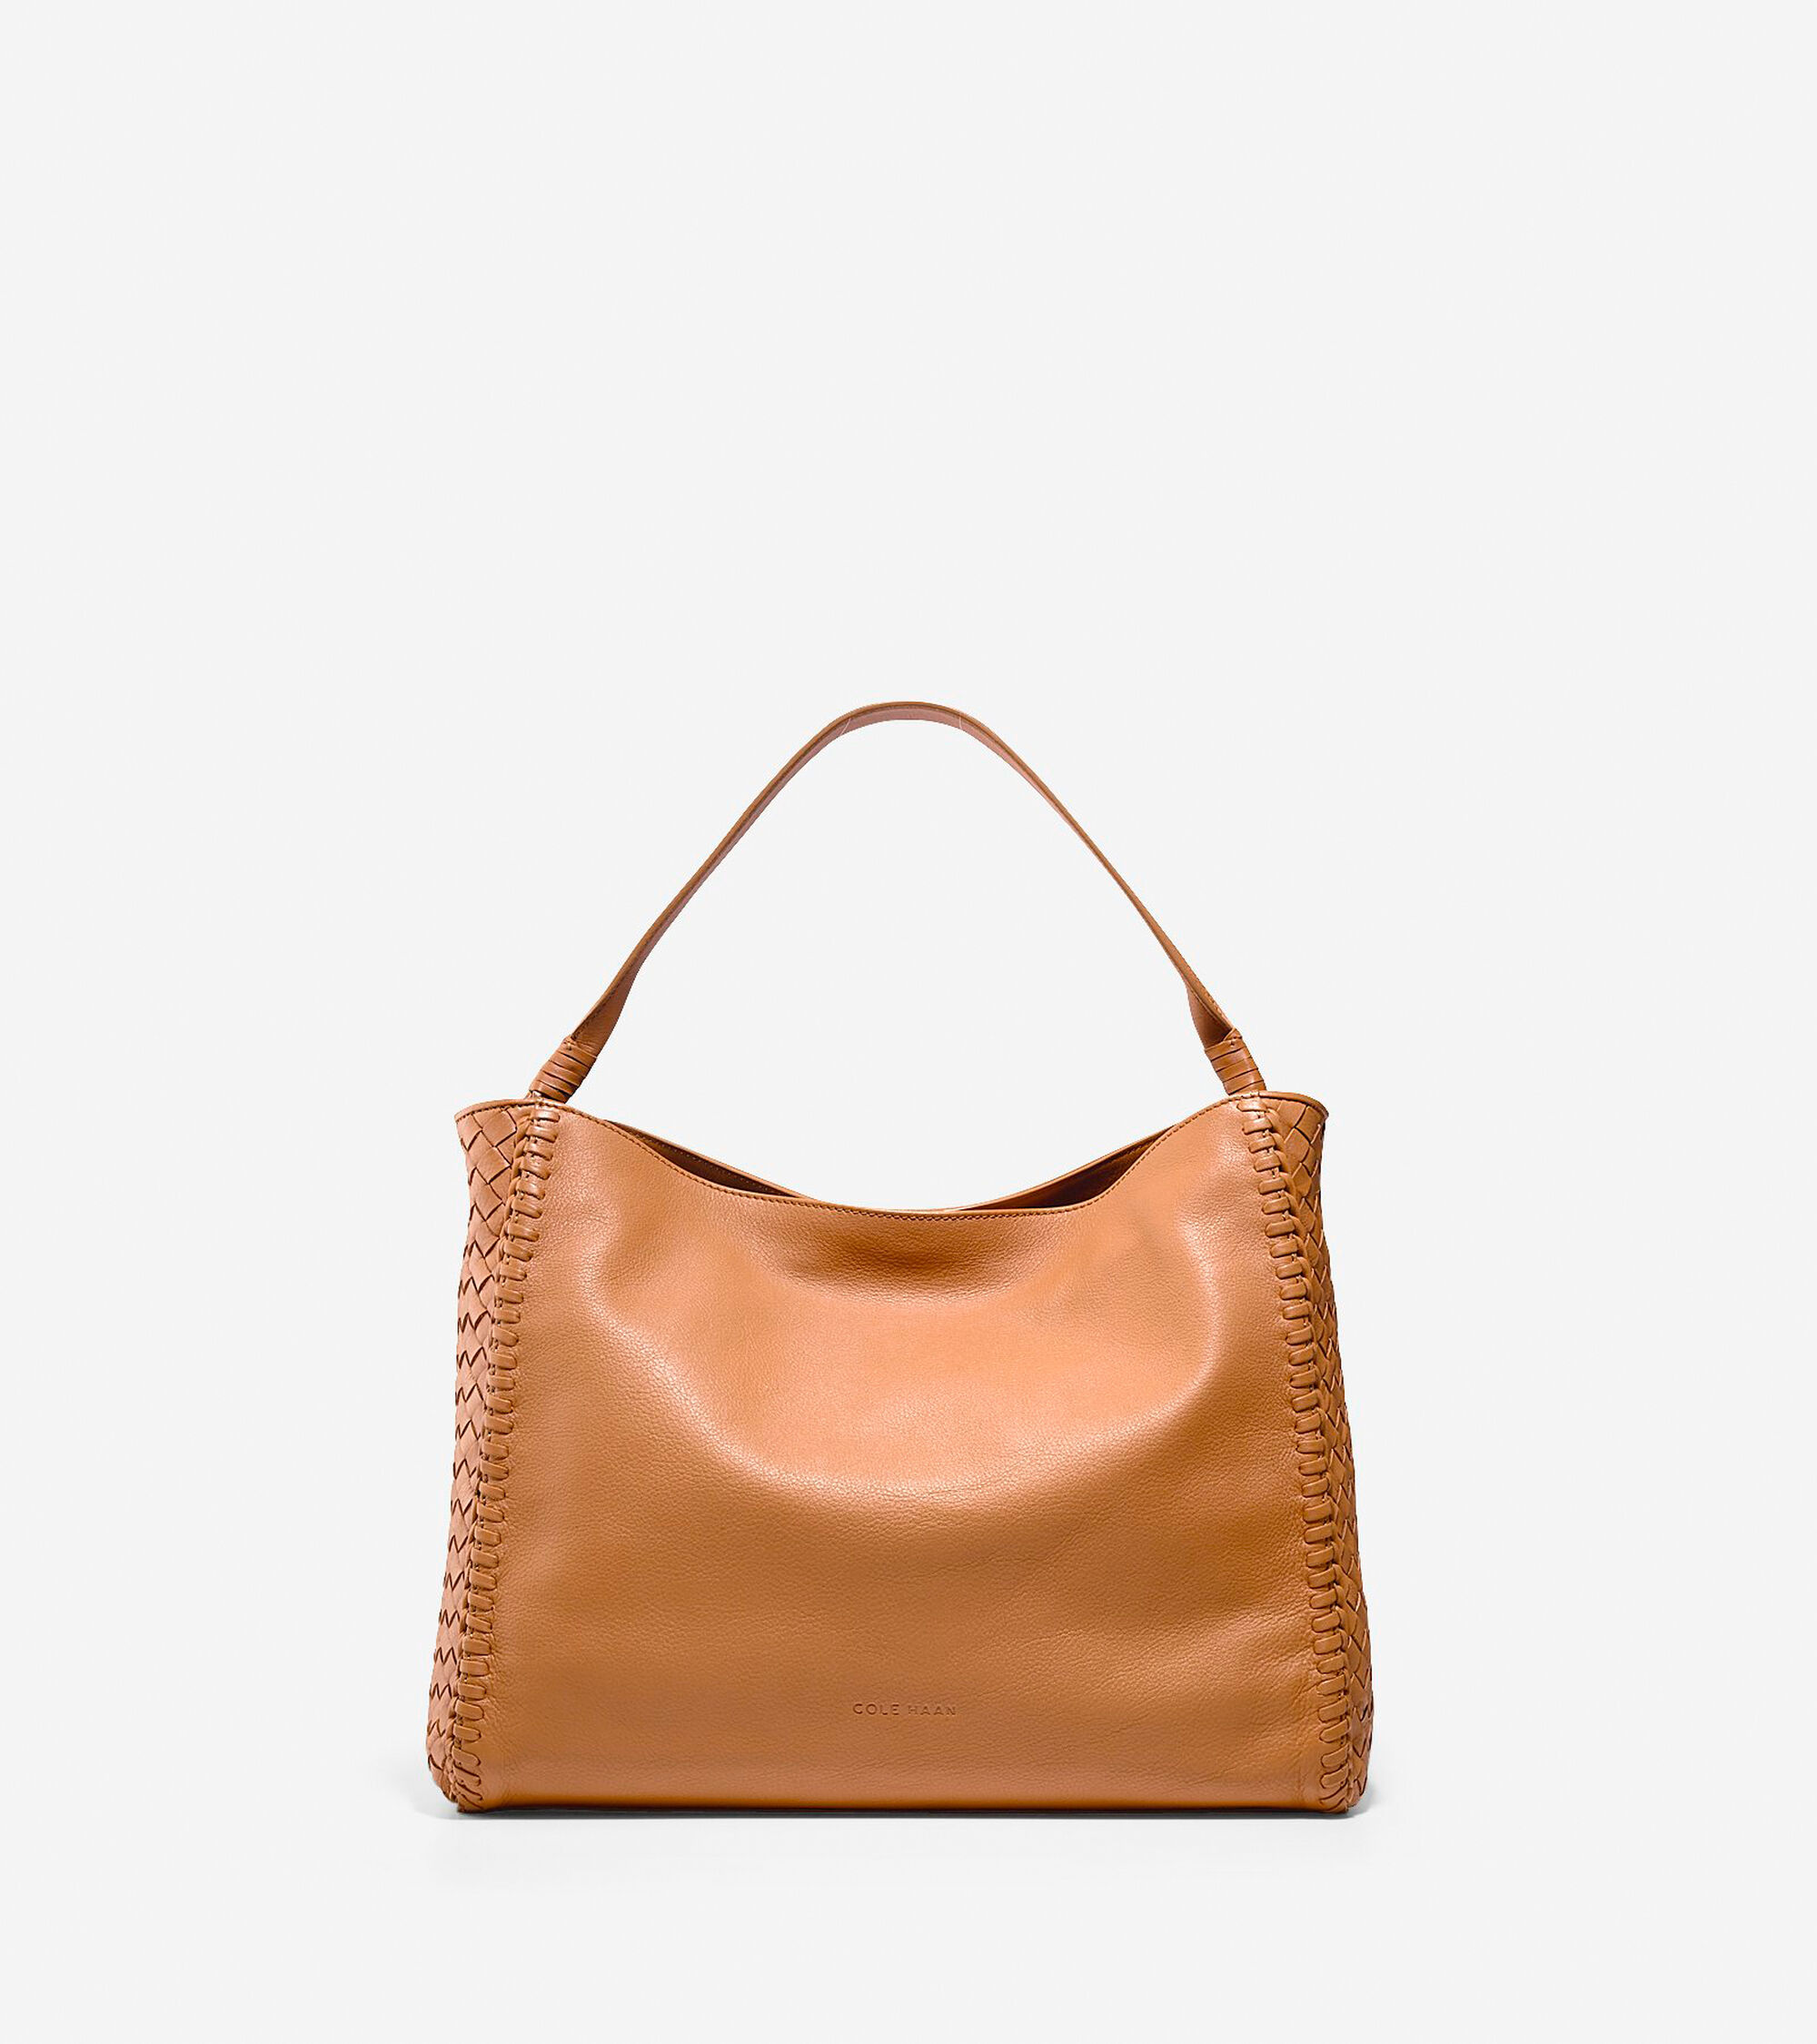 73d205eed1e1ff Accessories   Outerwear   Dillan Hobo. roll-over to zoom